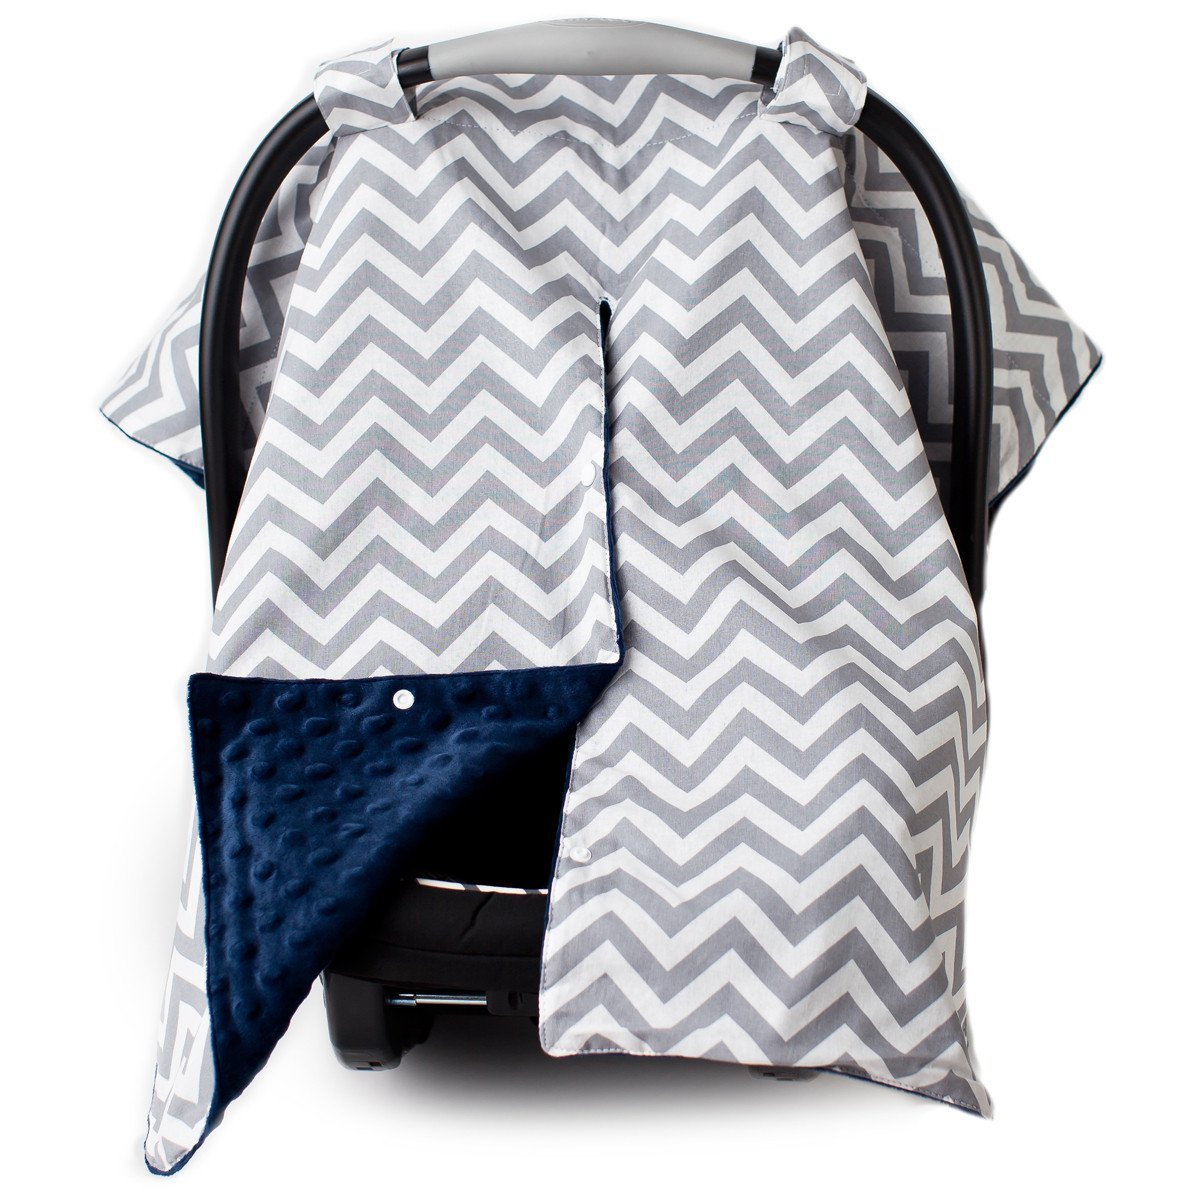 Get Quotations 2 In 1 Carseat Canopy And Nursing Cover Up With Peekaboo Opening